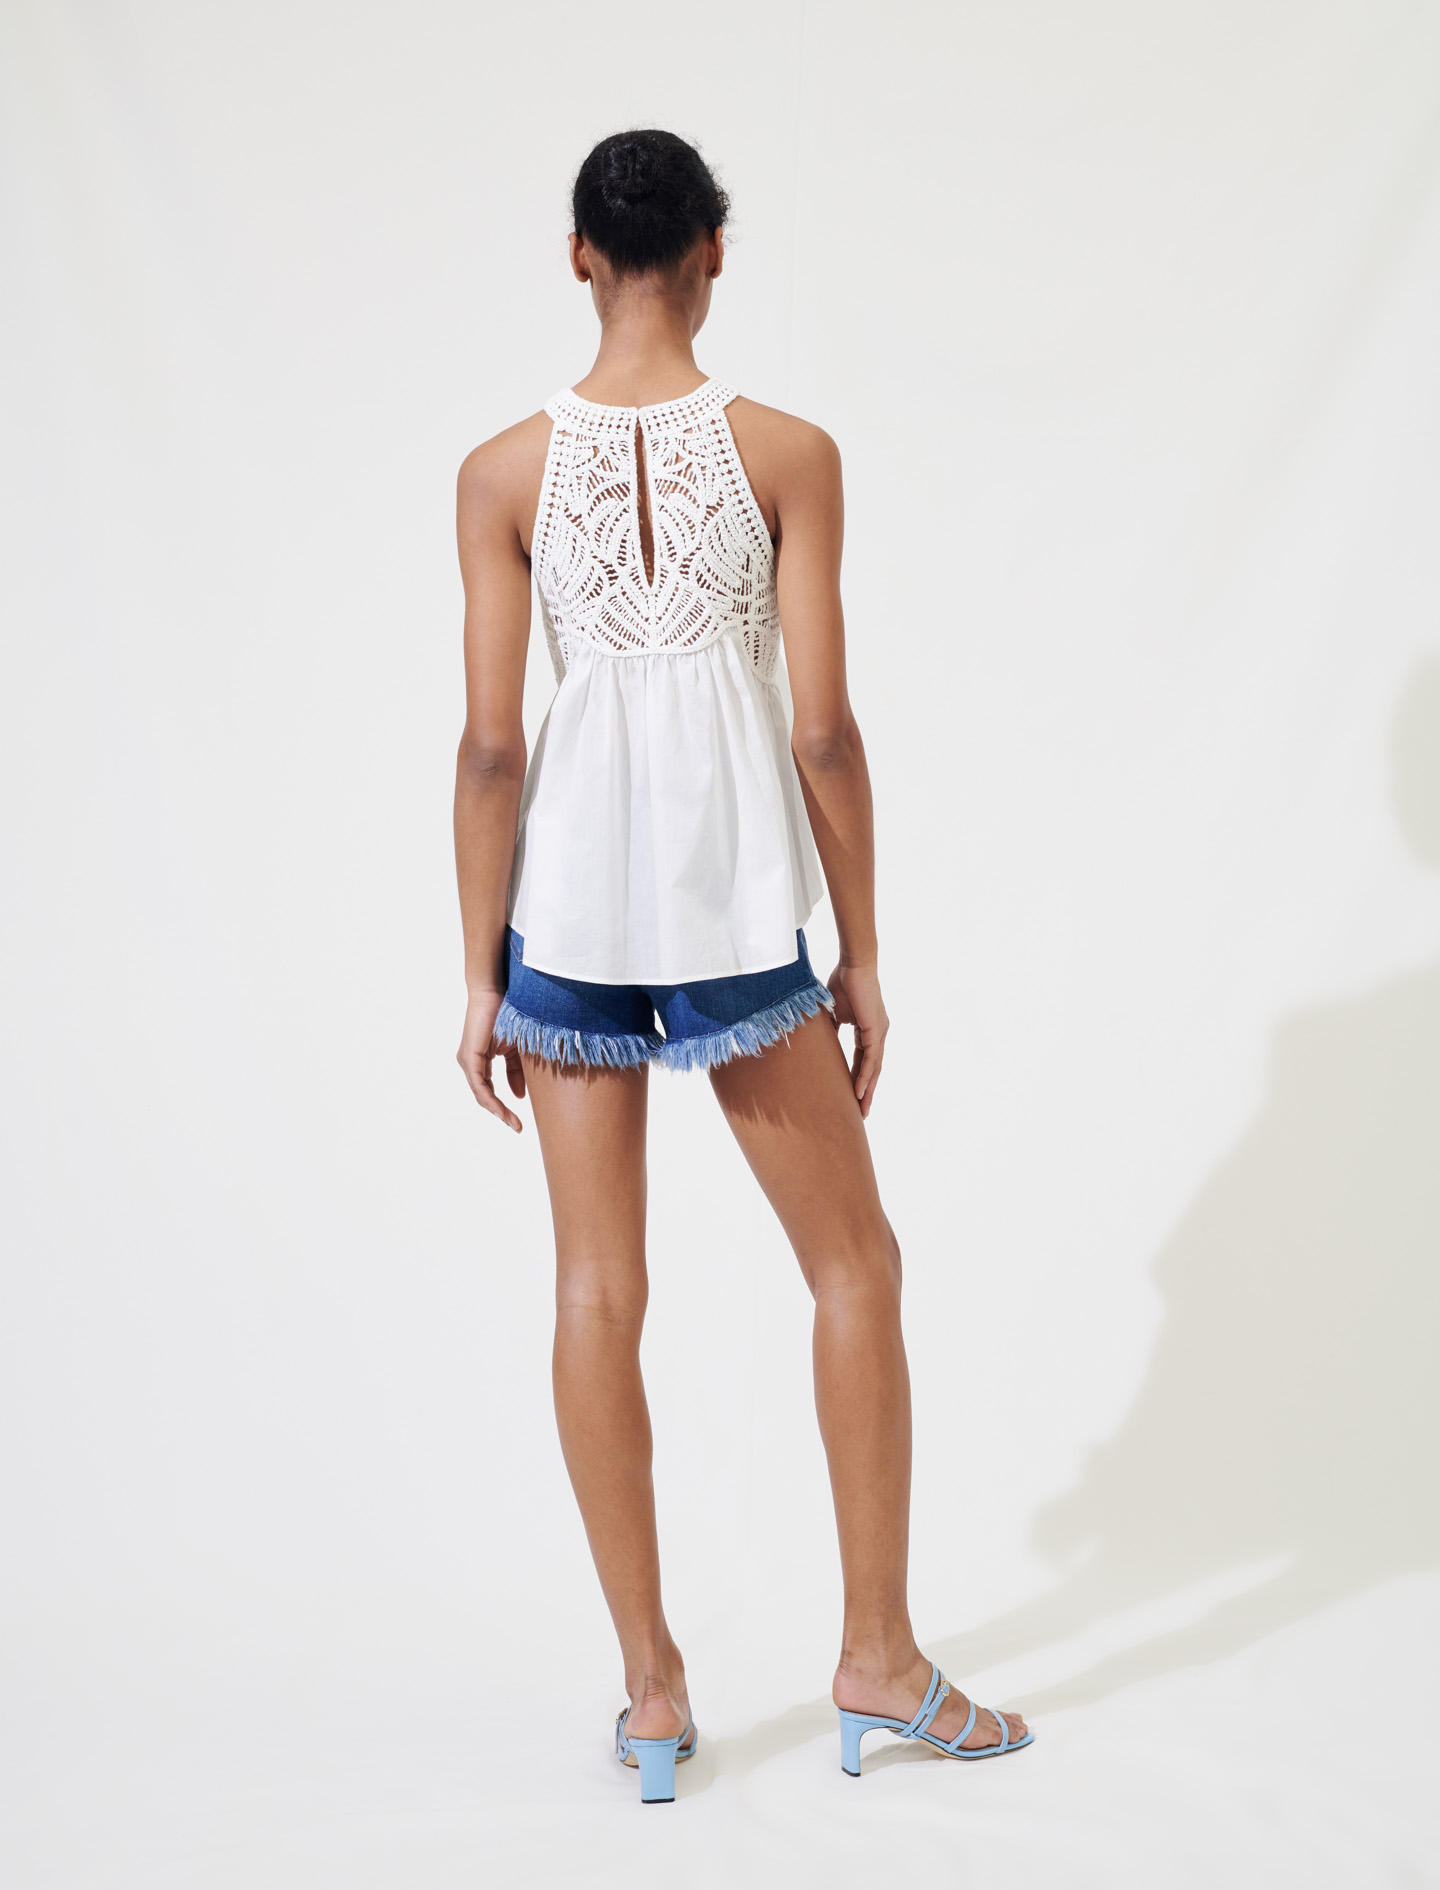 White singlet top with crochet detail by maje paris